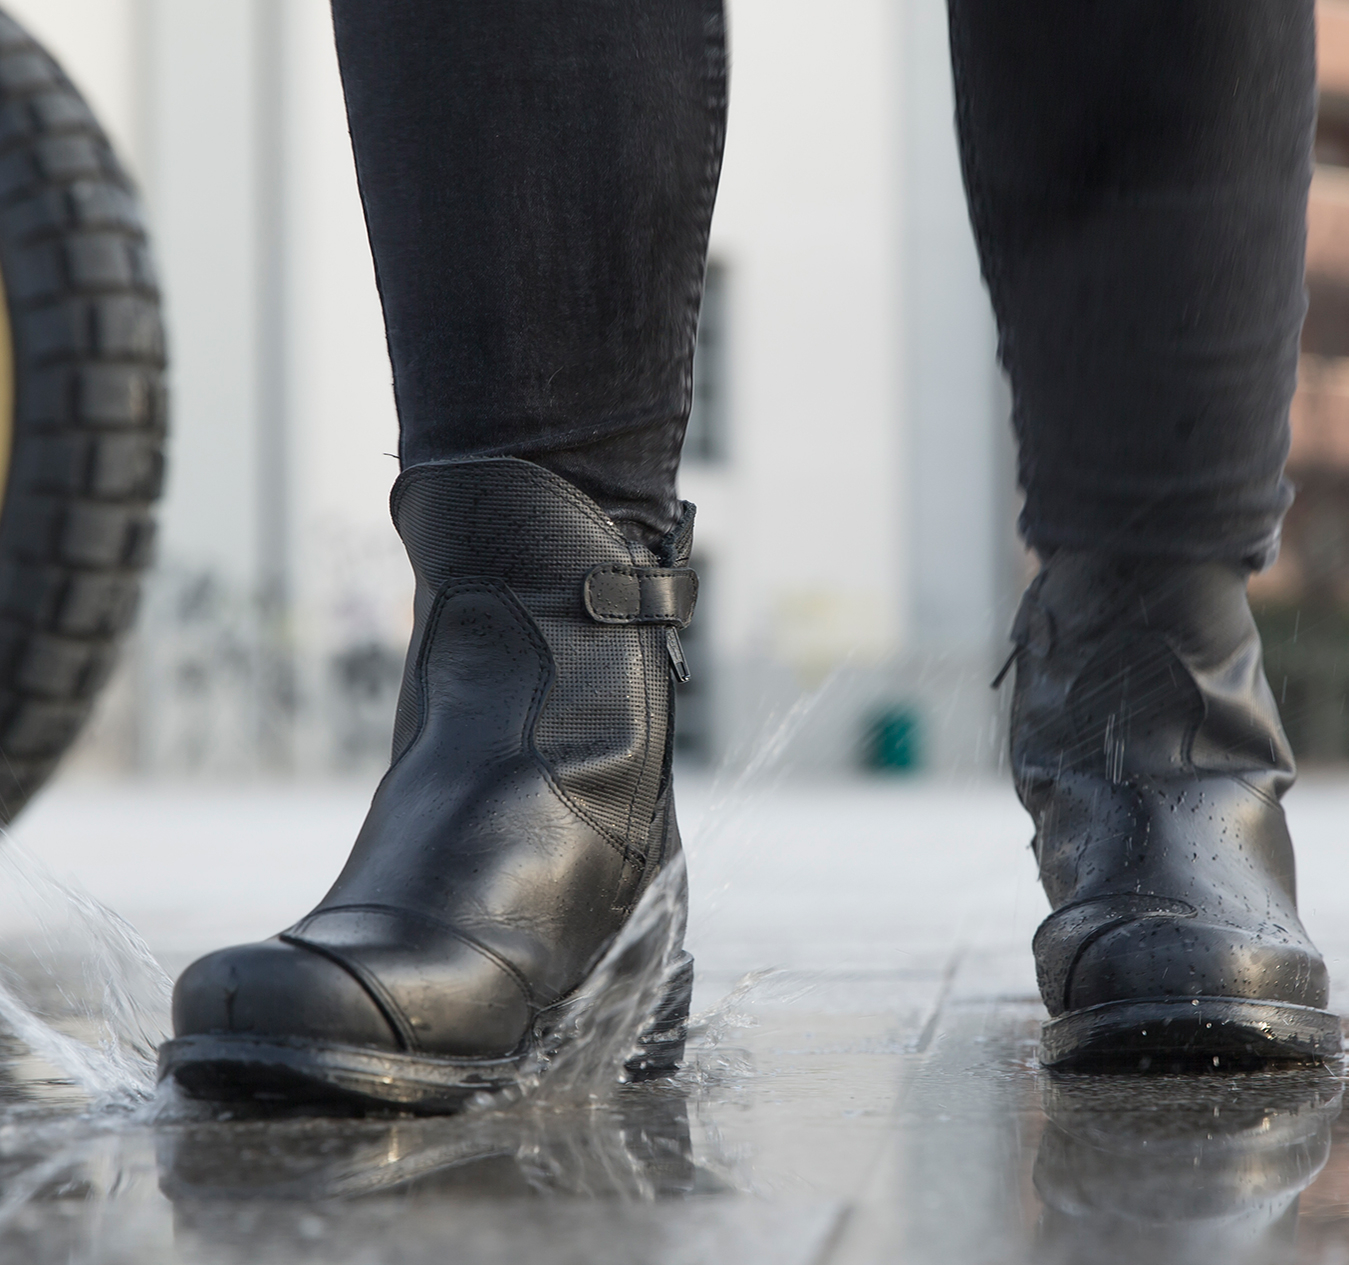 Choosing motorcycle shoes: are cowboy boots good for motorcycle riding?